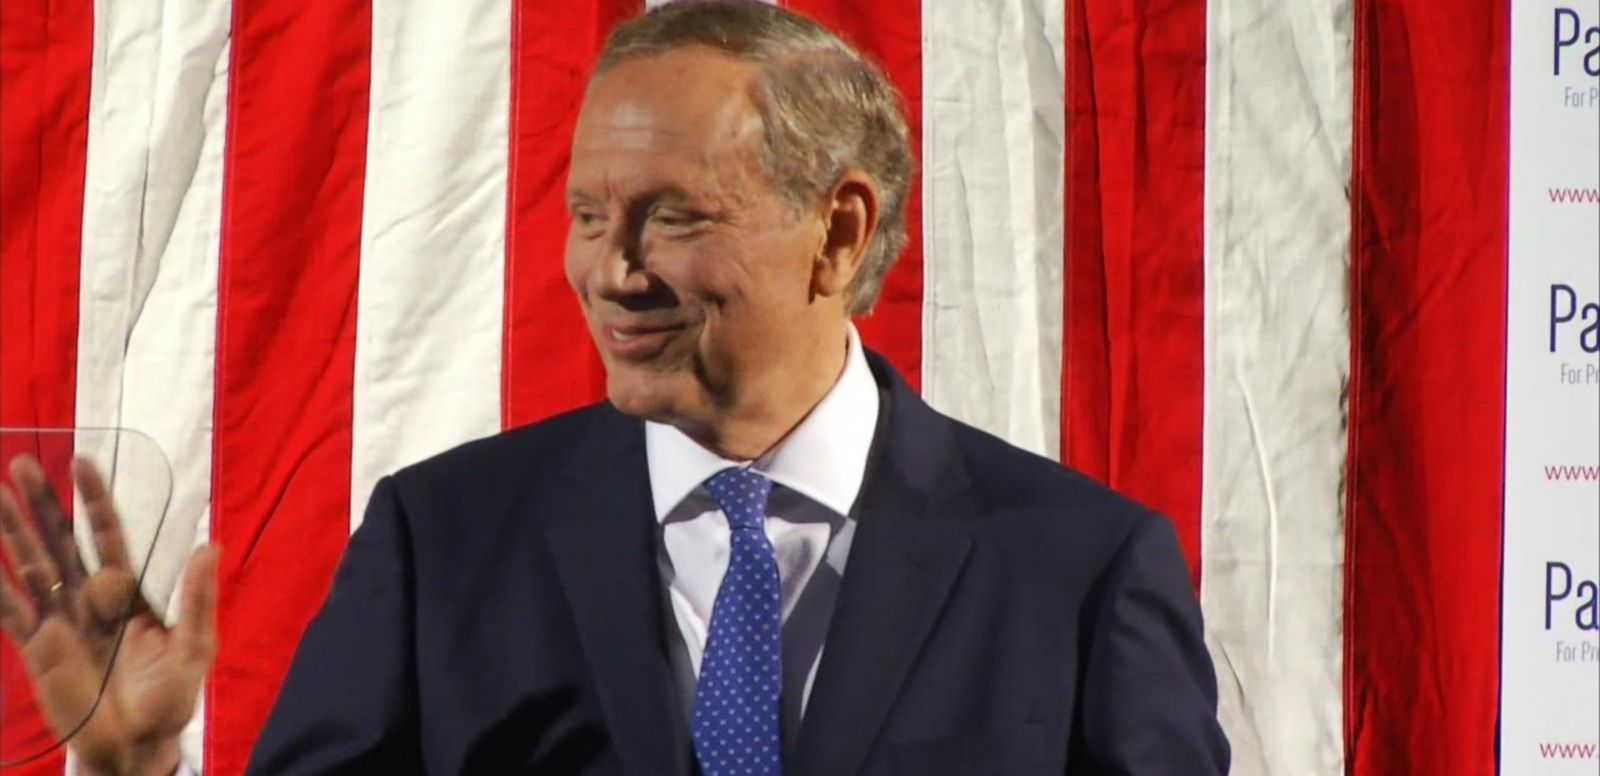 VIDEO: The former New York governor joined the growing pool of GOP candidates.